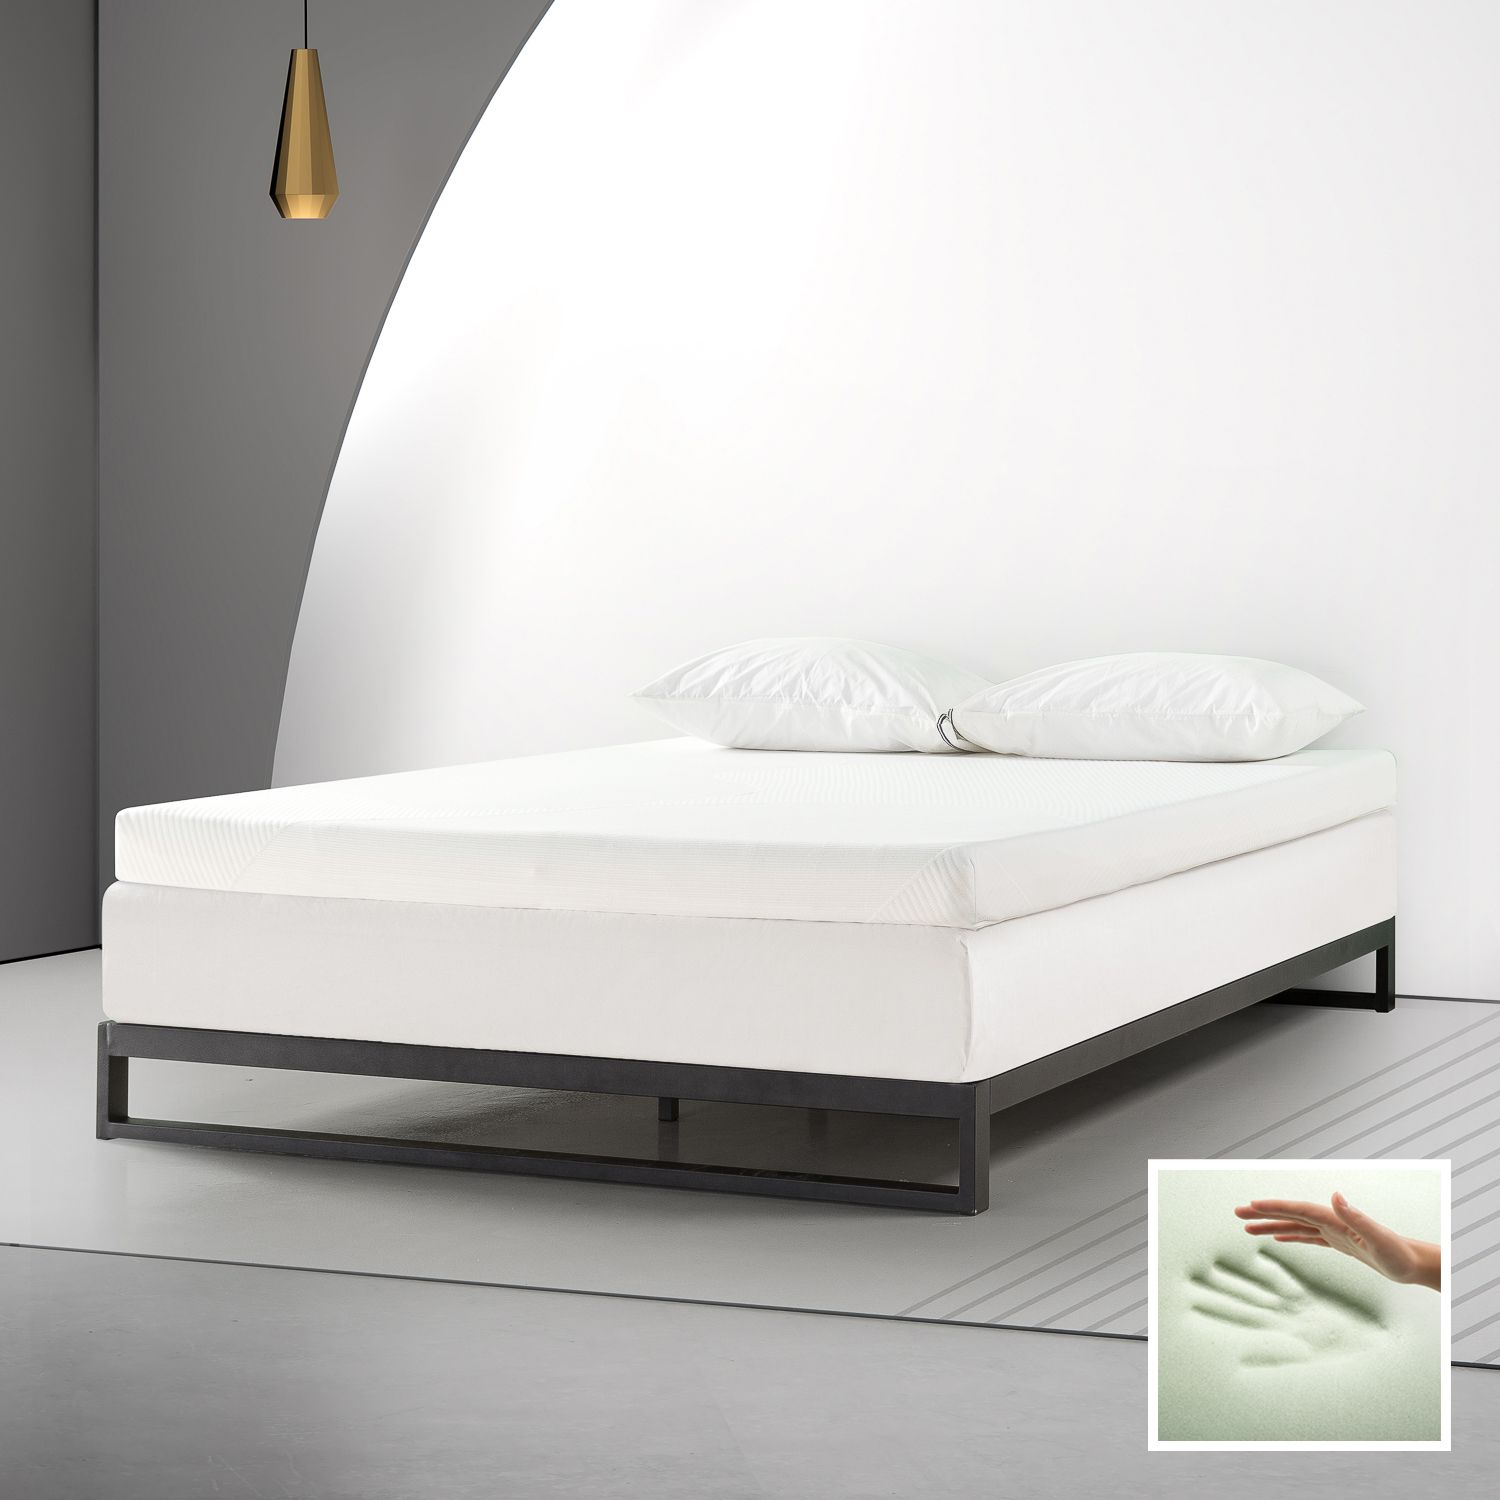 Spa Sensations By Zinus 4 Memory Foam Mattress Topper With Theratouch King Walmart Com In 2020 Mattress Topper Memory Foam Mattress Topper Foam Mattress Topper